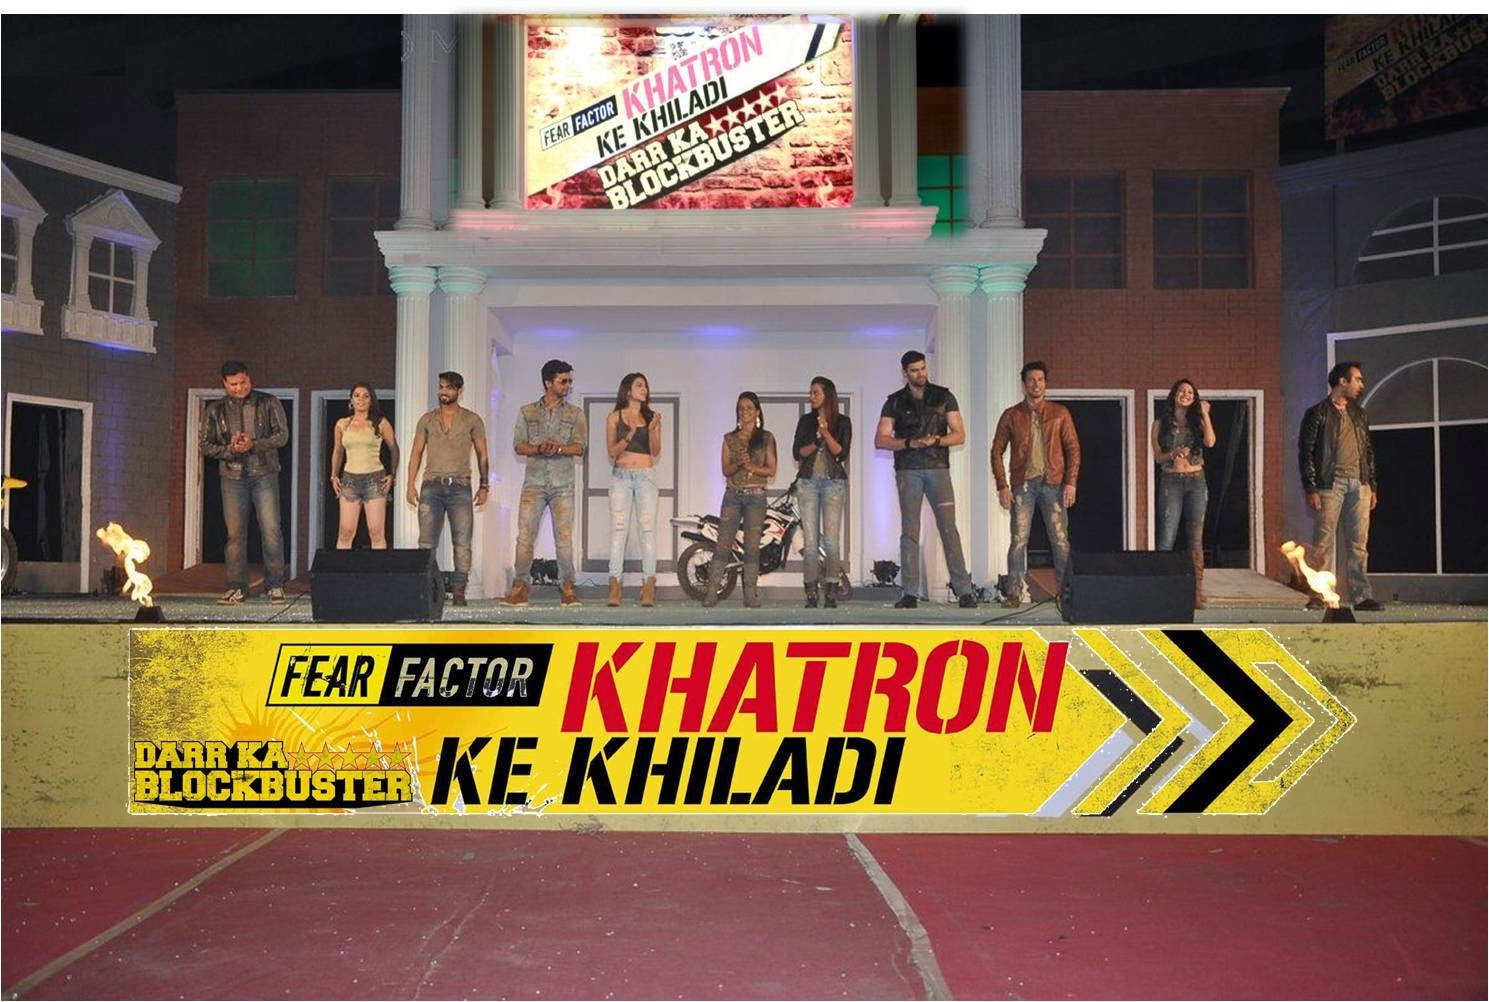 17 Contestants of Fear Factor Khatron Ke Khiladi Season 5: Dar Ka Blockbuster with Rohit Shetty